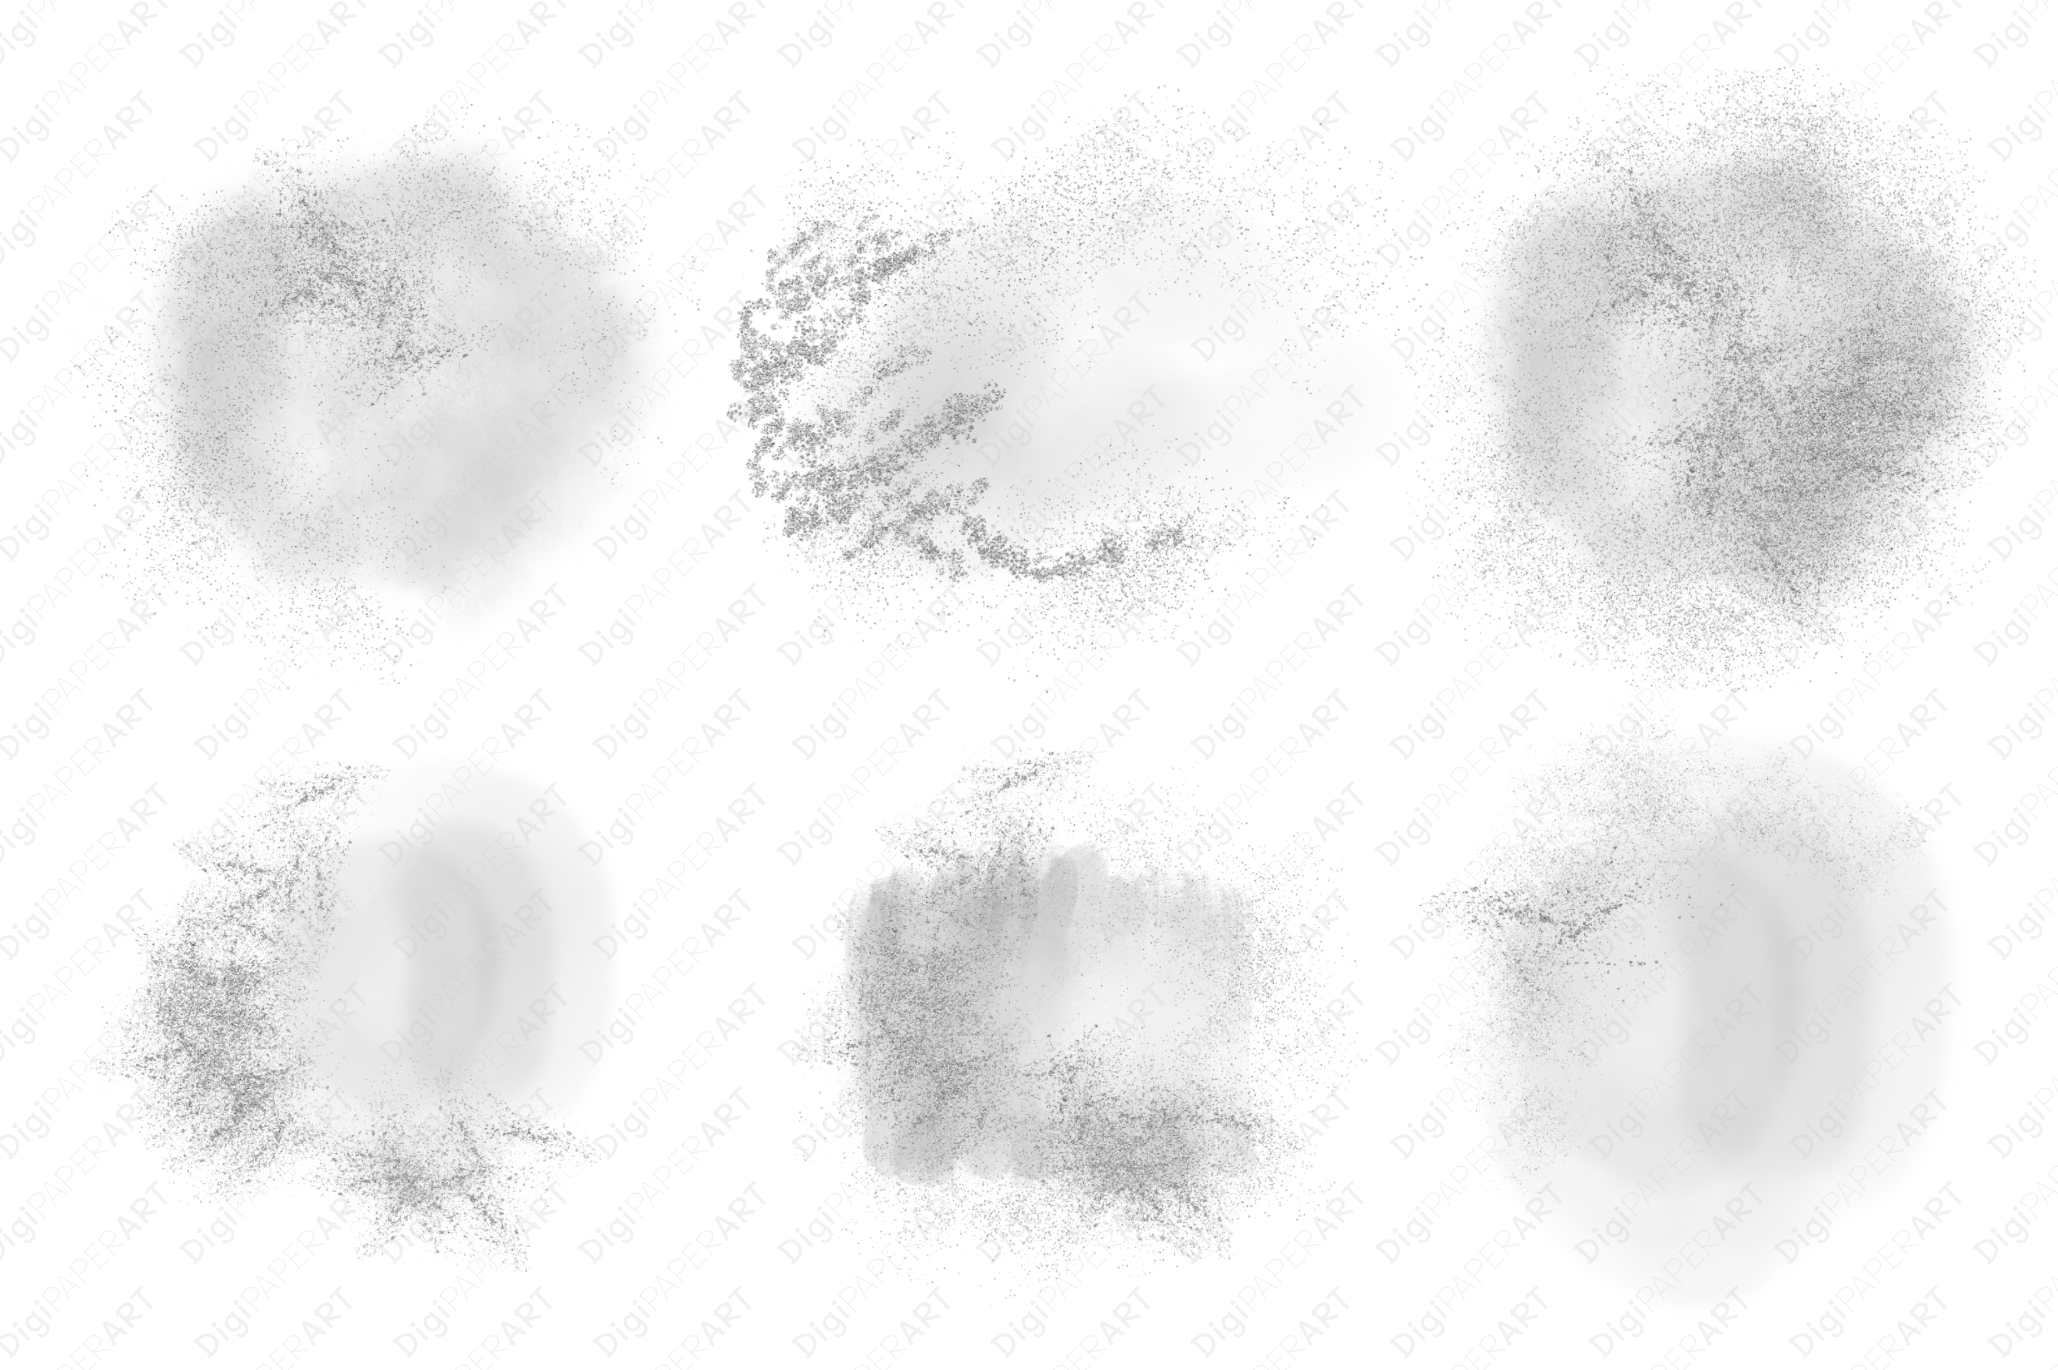 Silver Glitter and Grey Watercolor Backgrounds example image 4